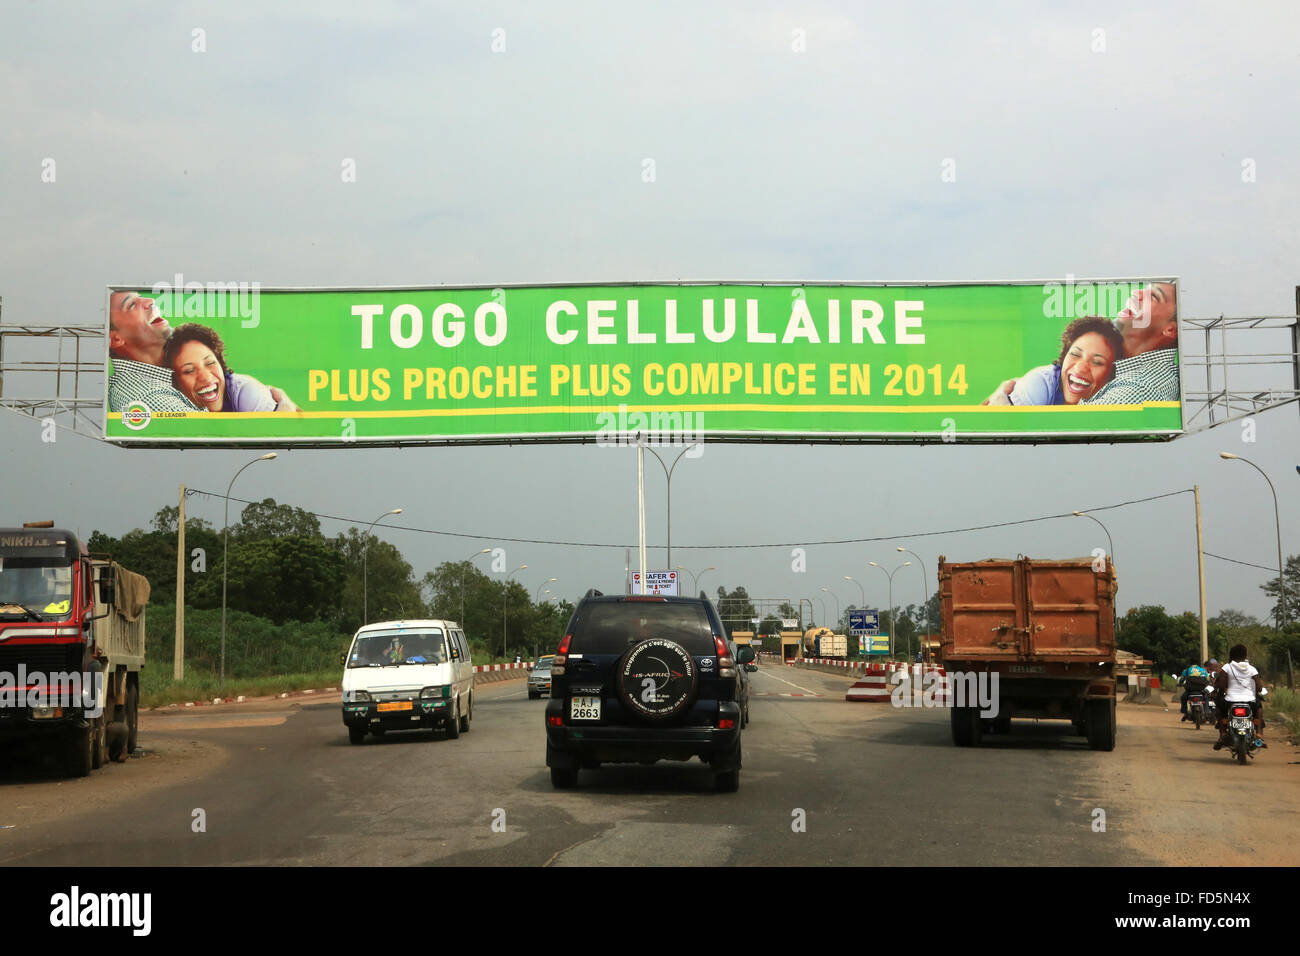 Traffic and Advertising for 'Togo Cellular, closer, more complicit in 2014.' - Stock Image